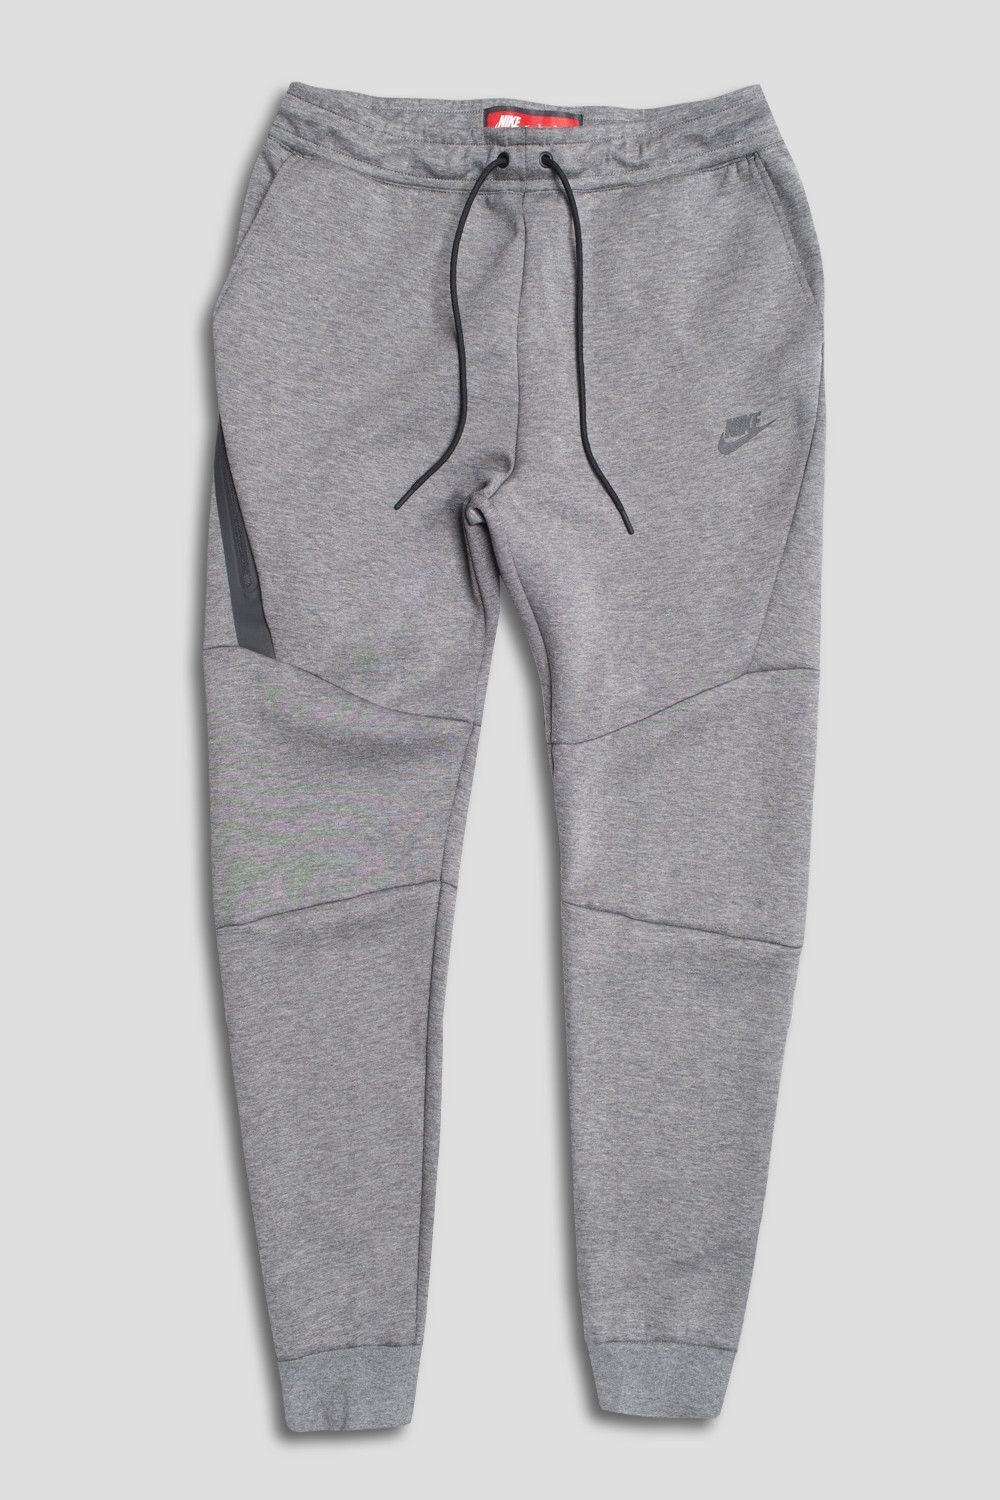 9bbc90b81569 The Nike Sportswear Tech Fleece Men s Joggers give you all day comfort in a…